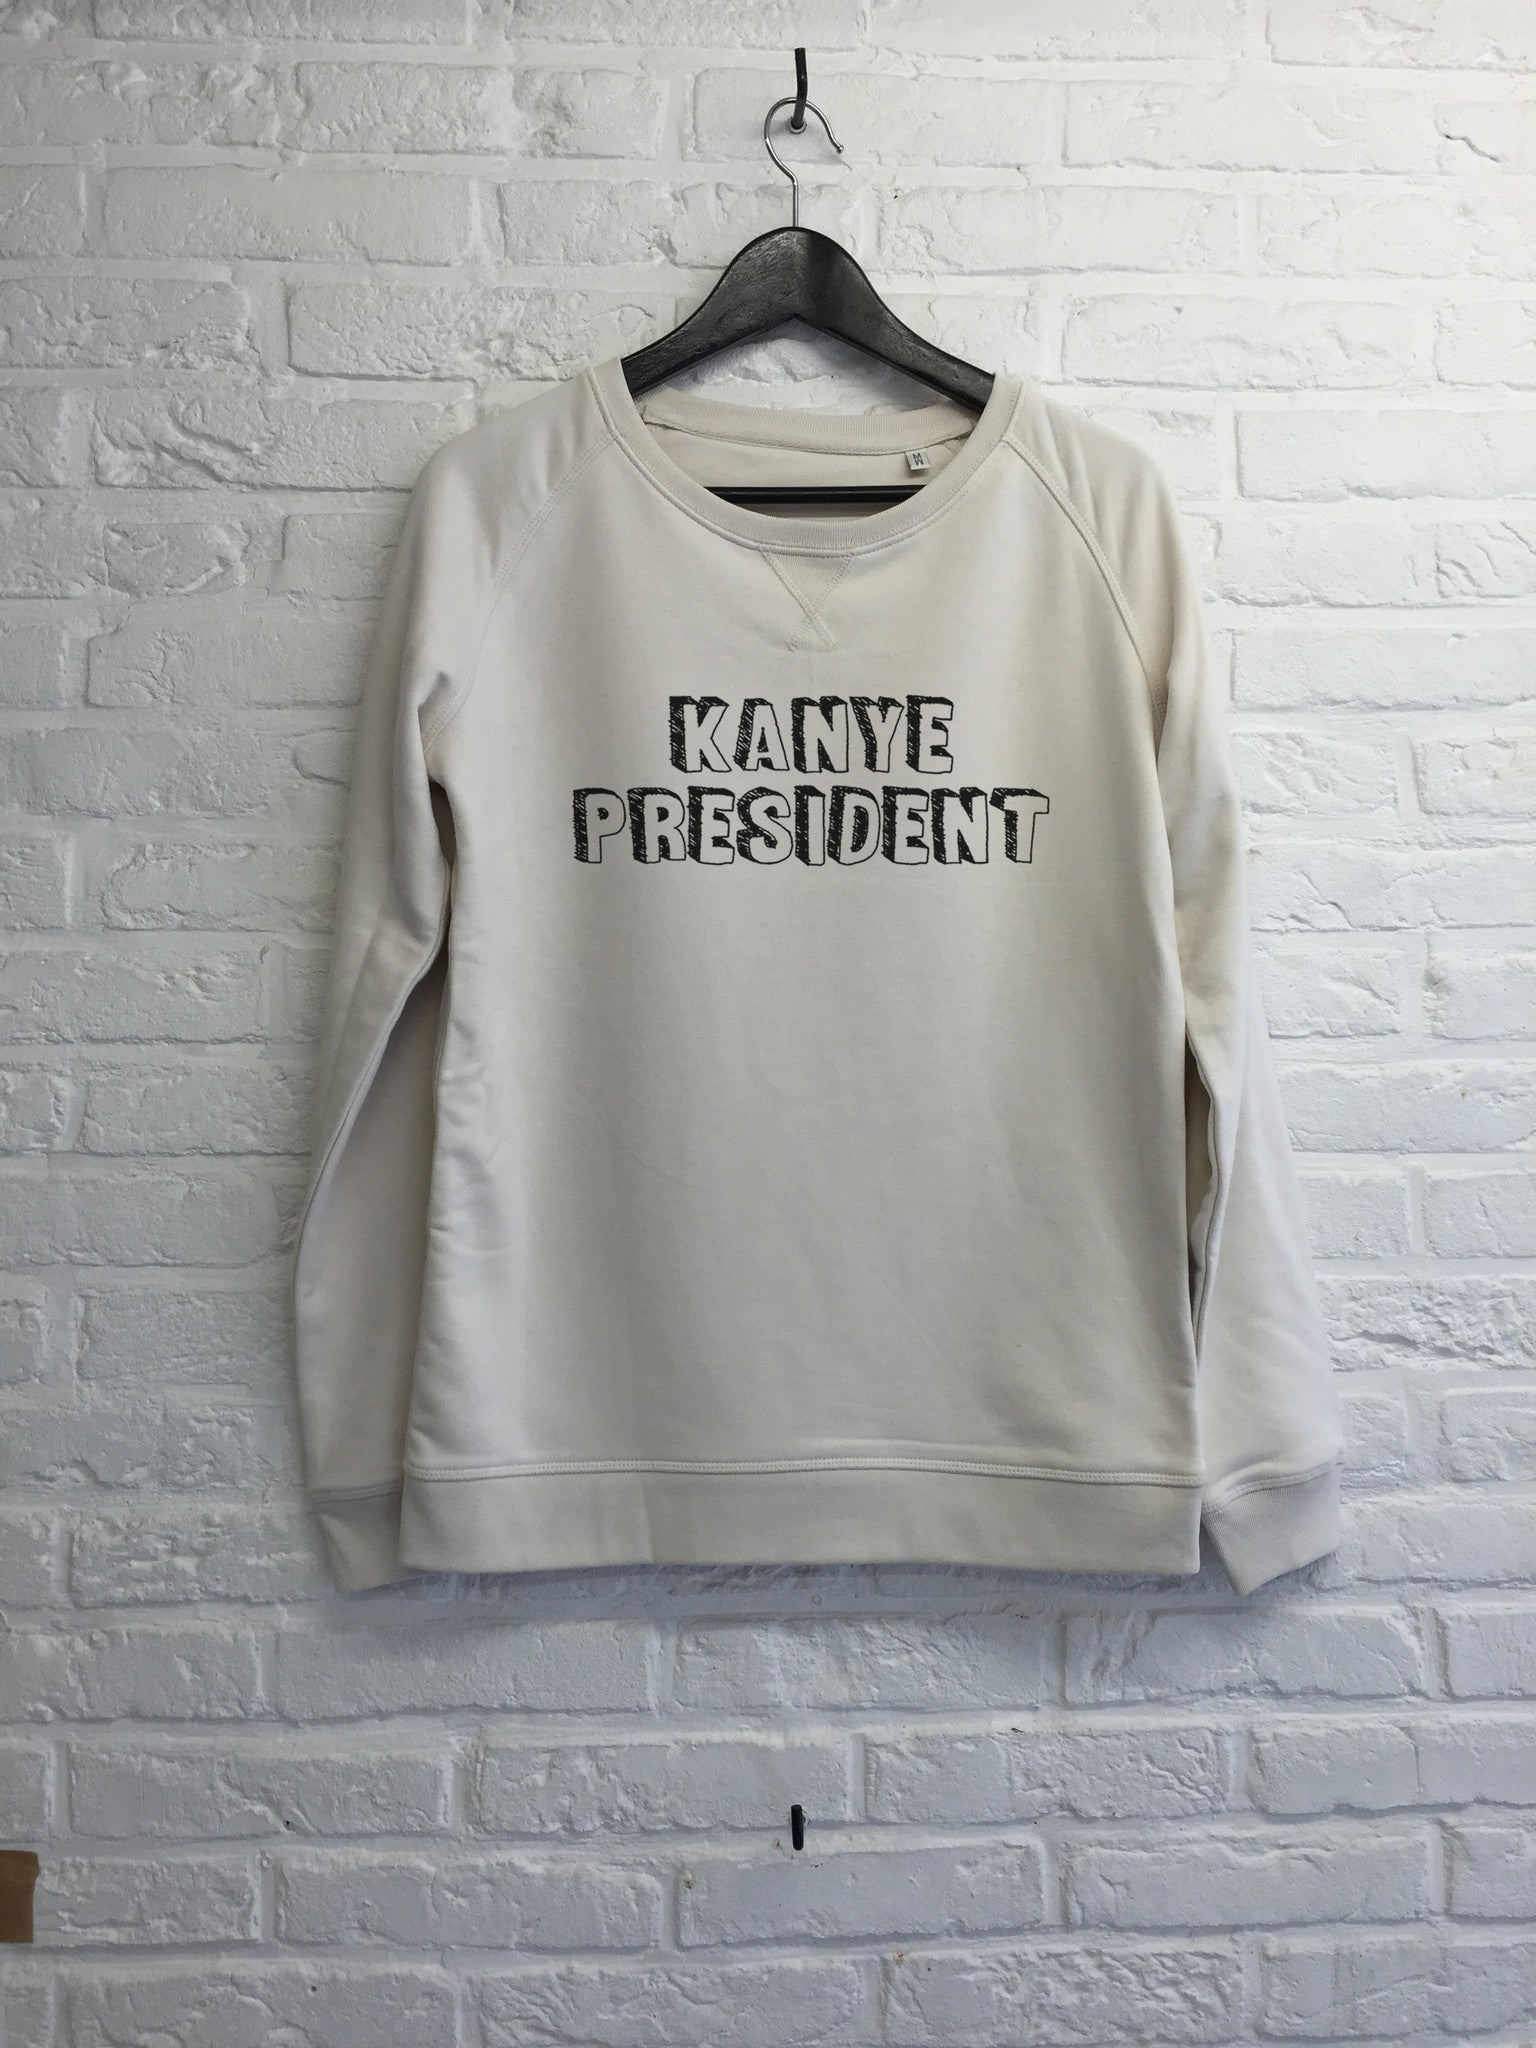 Kanye President - Sweat - Femme-Sweat shirts-Atelier Amelot